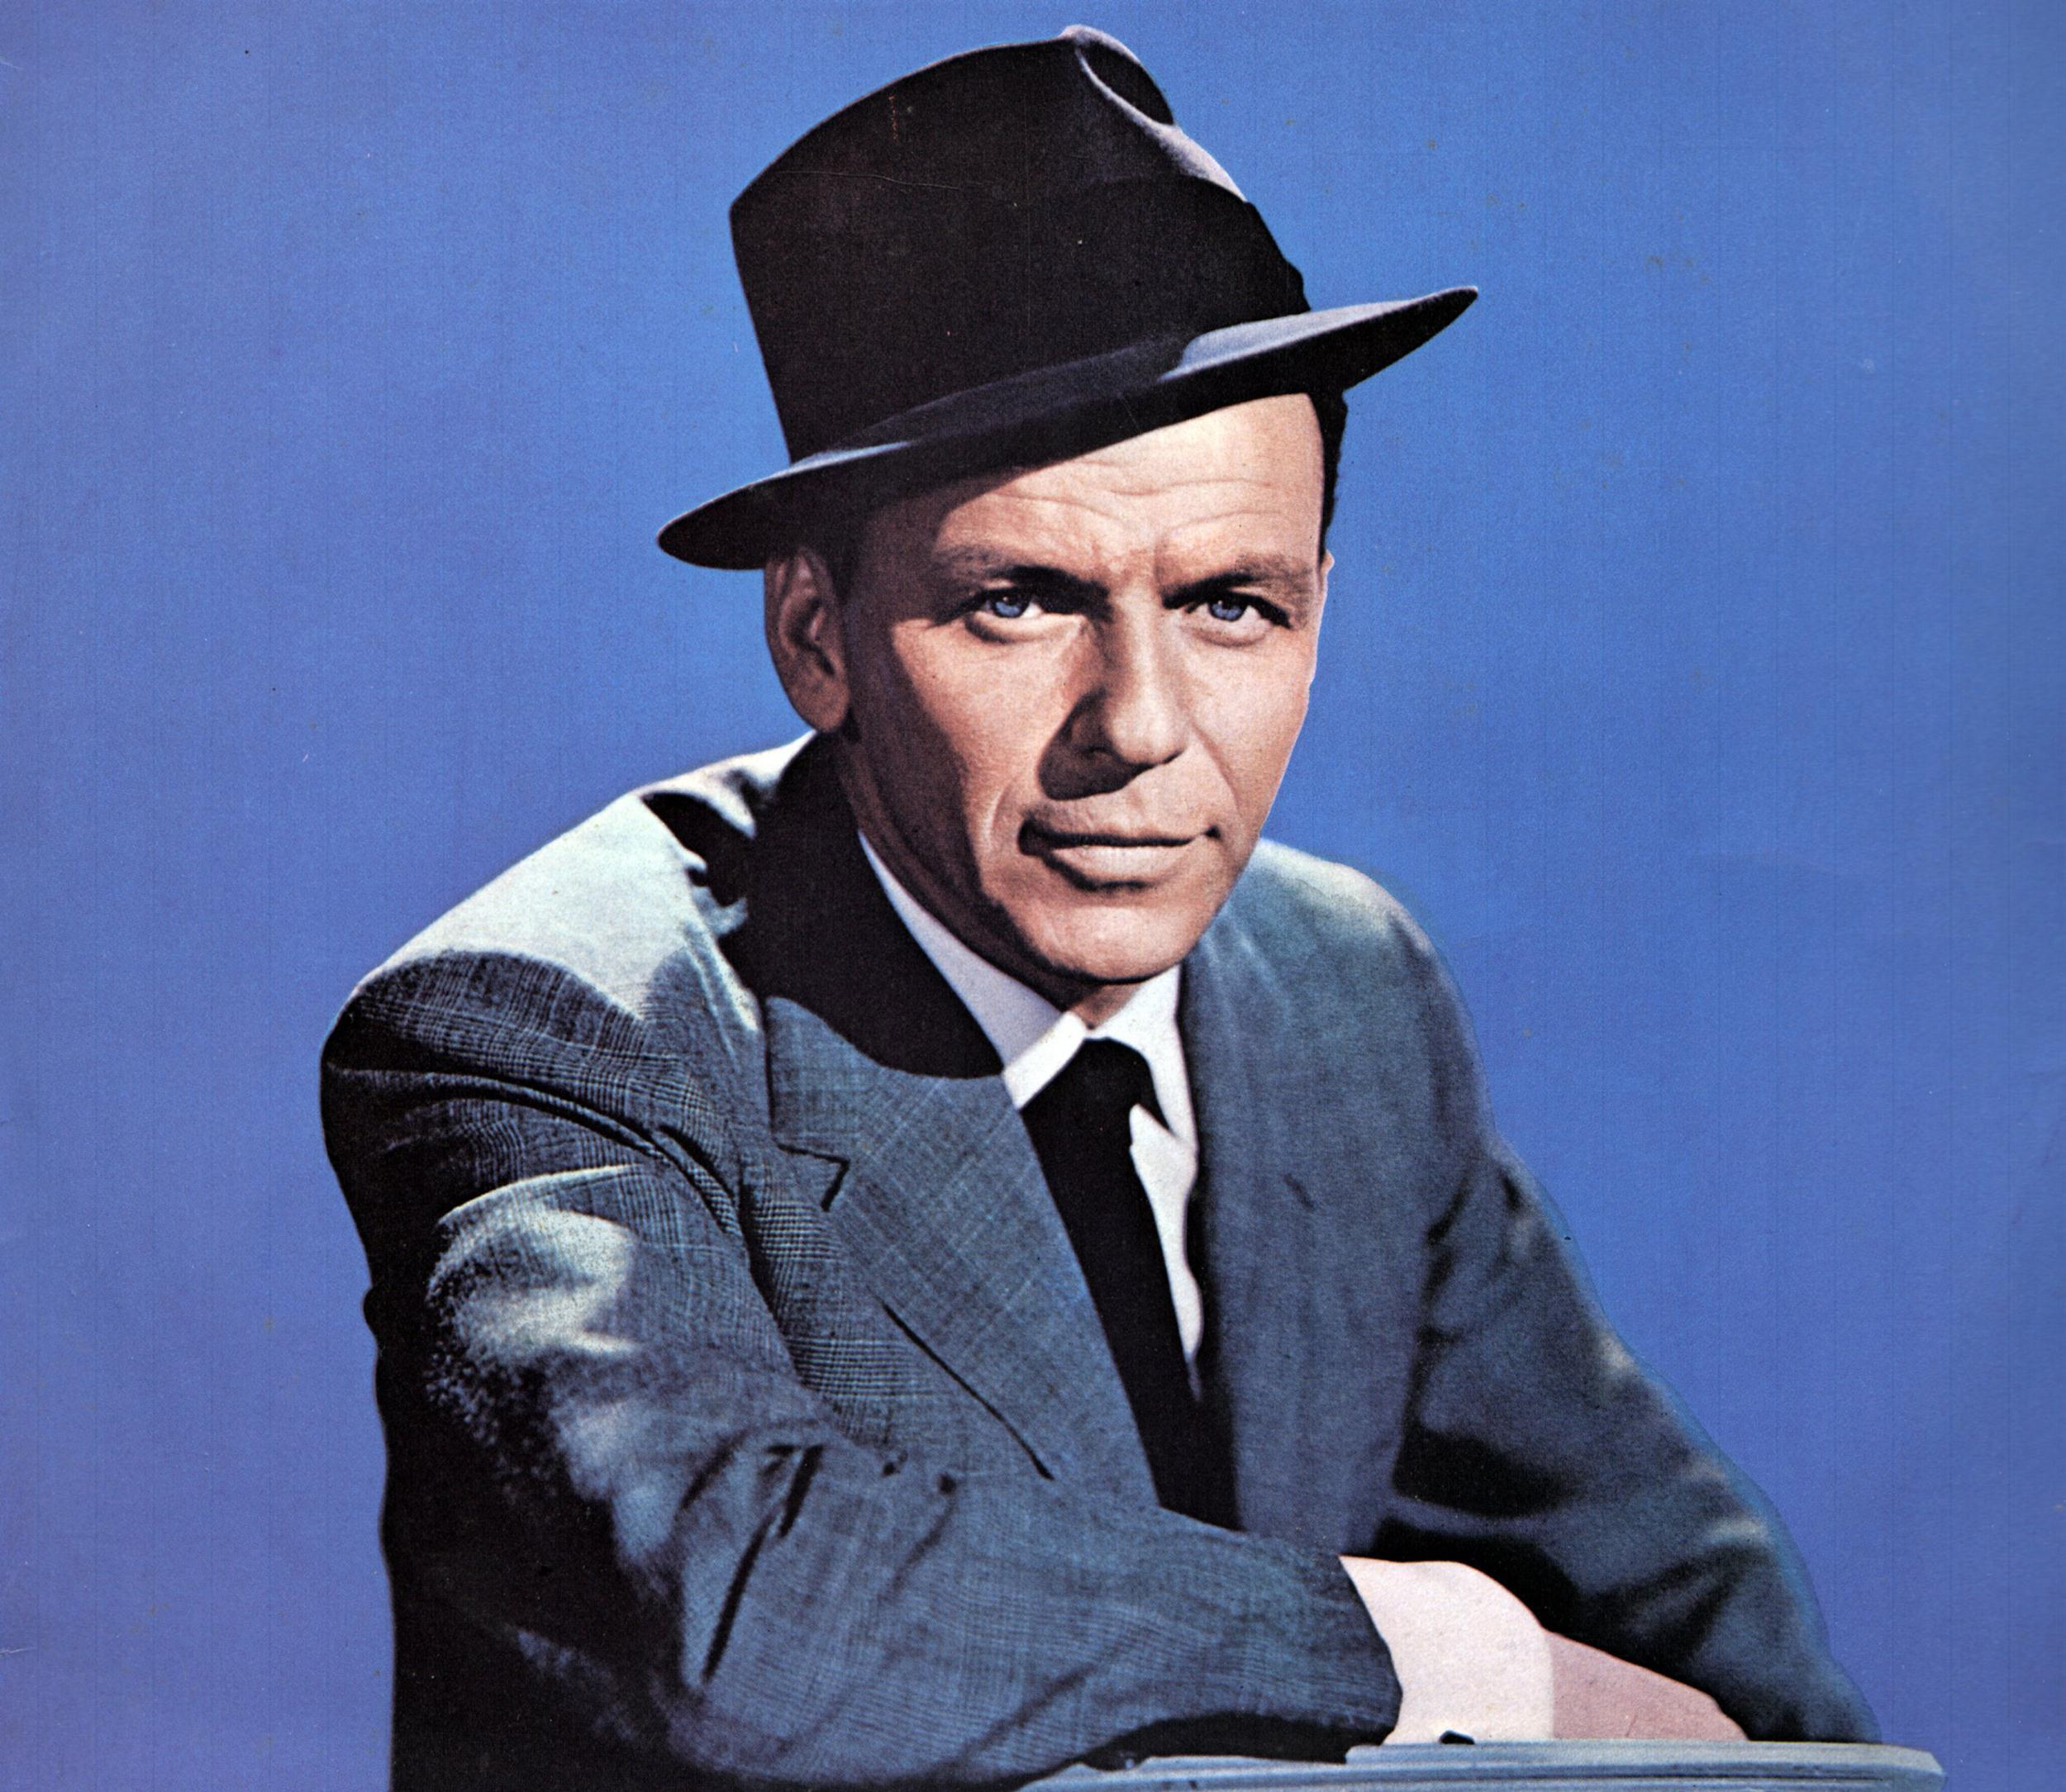 Frank Sinatra's hometown celebrates his anniversary